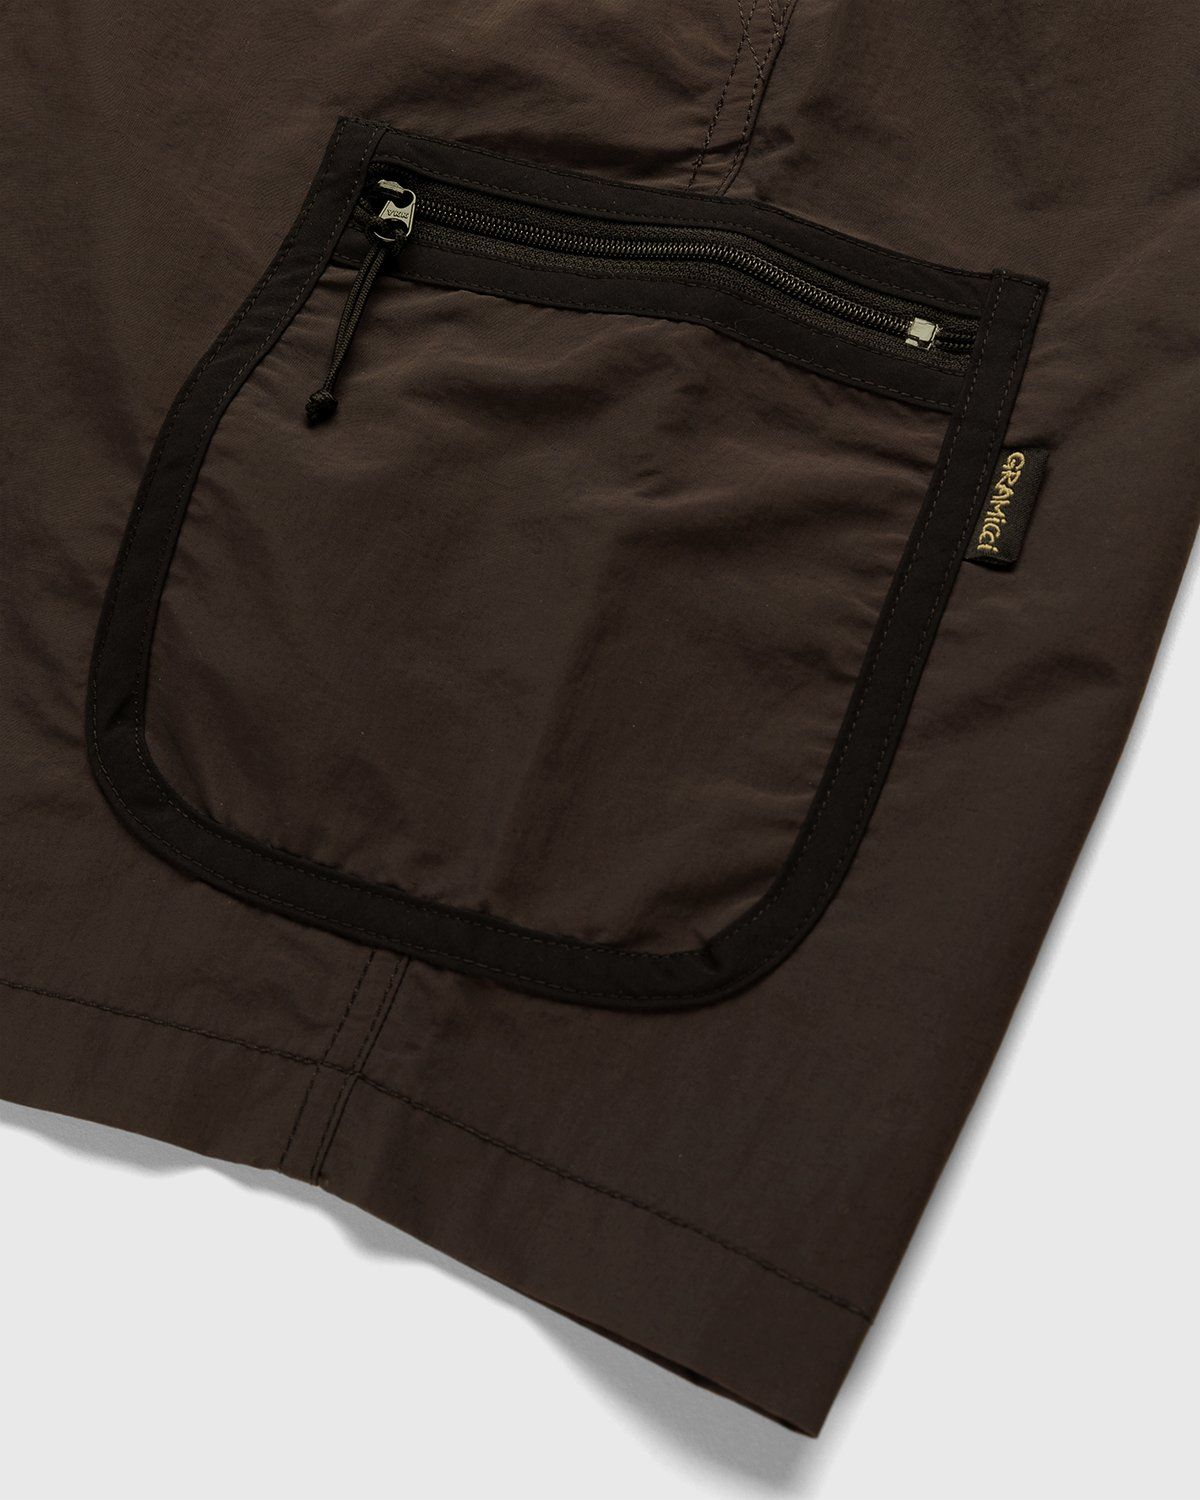 Gramicci for Highsnobiety – Shorts Brown - Image 4